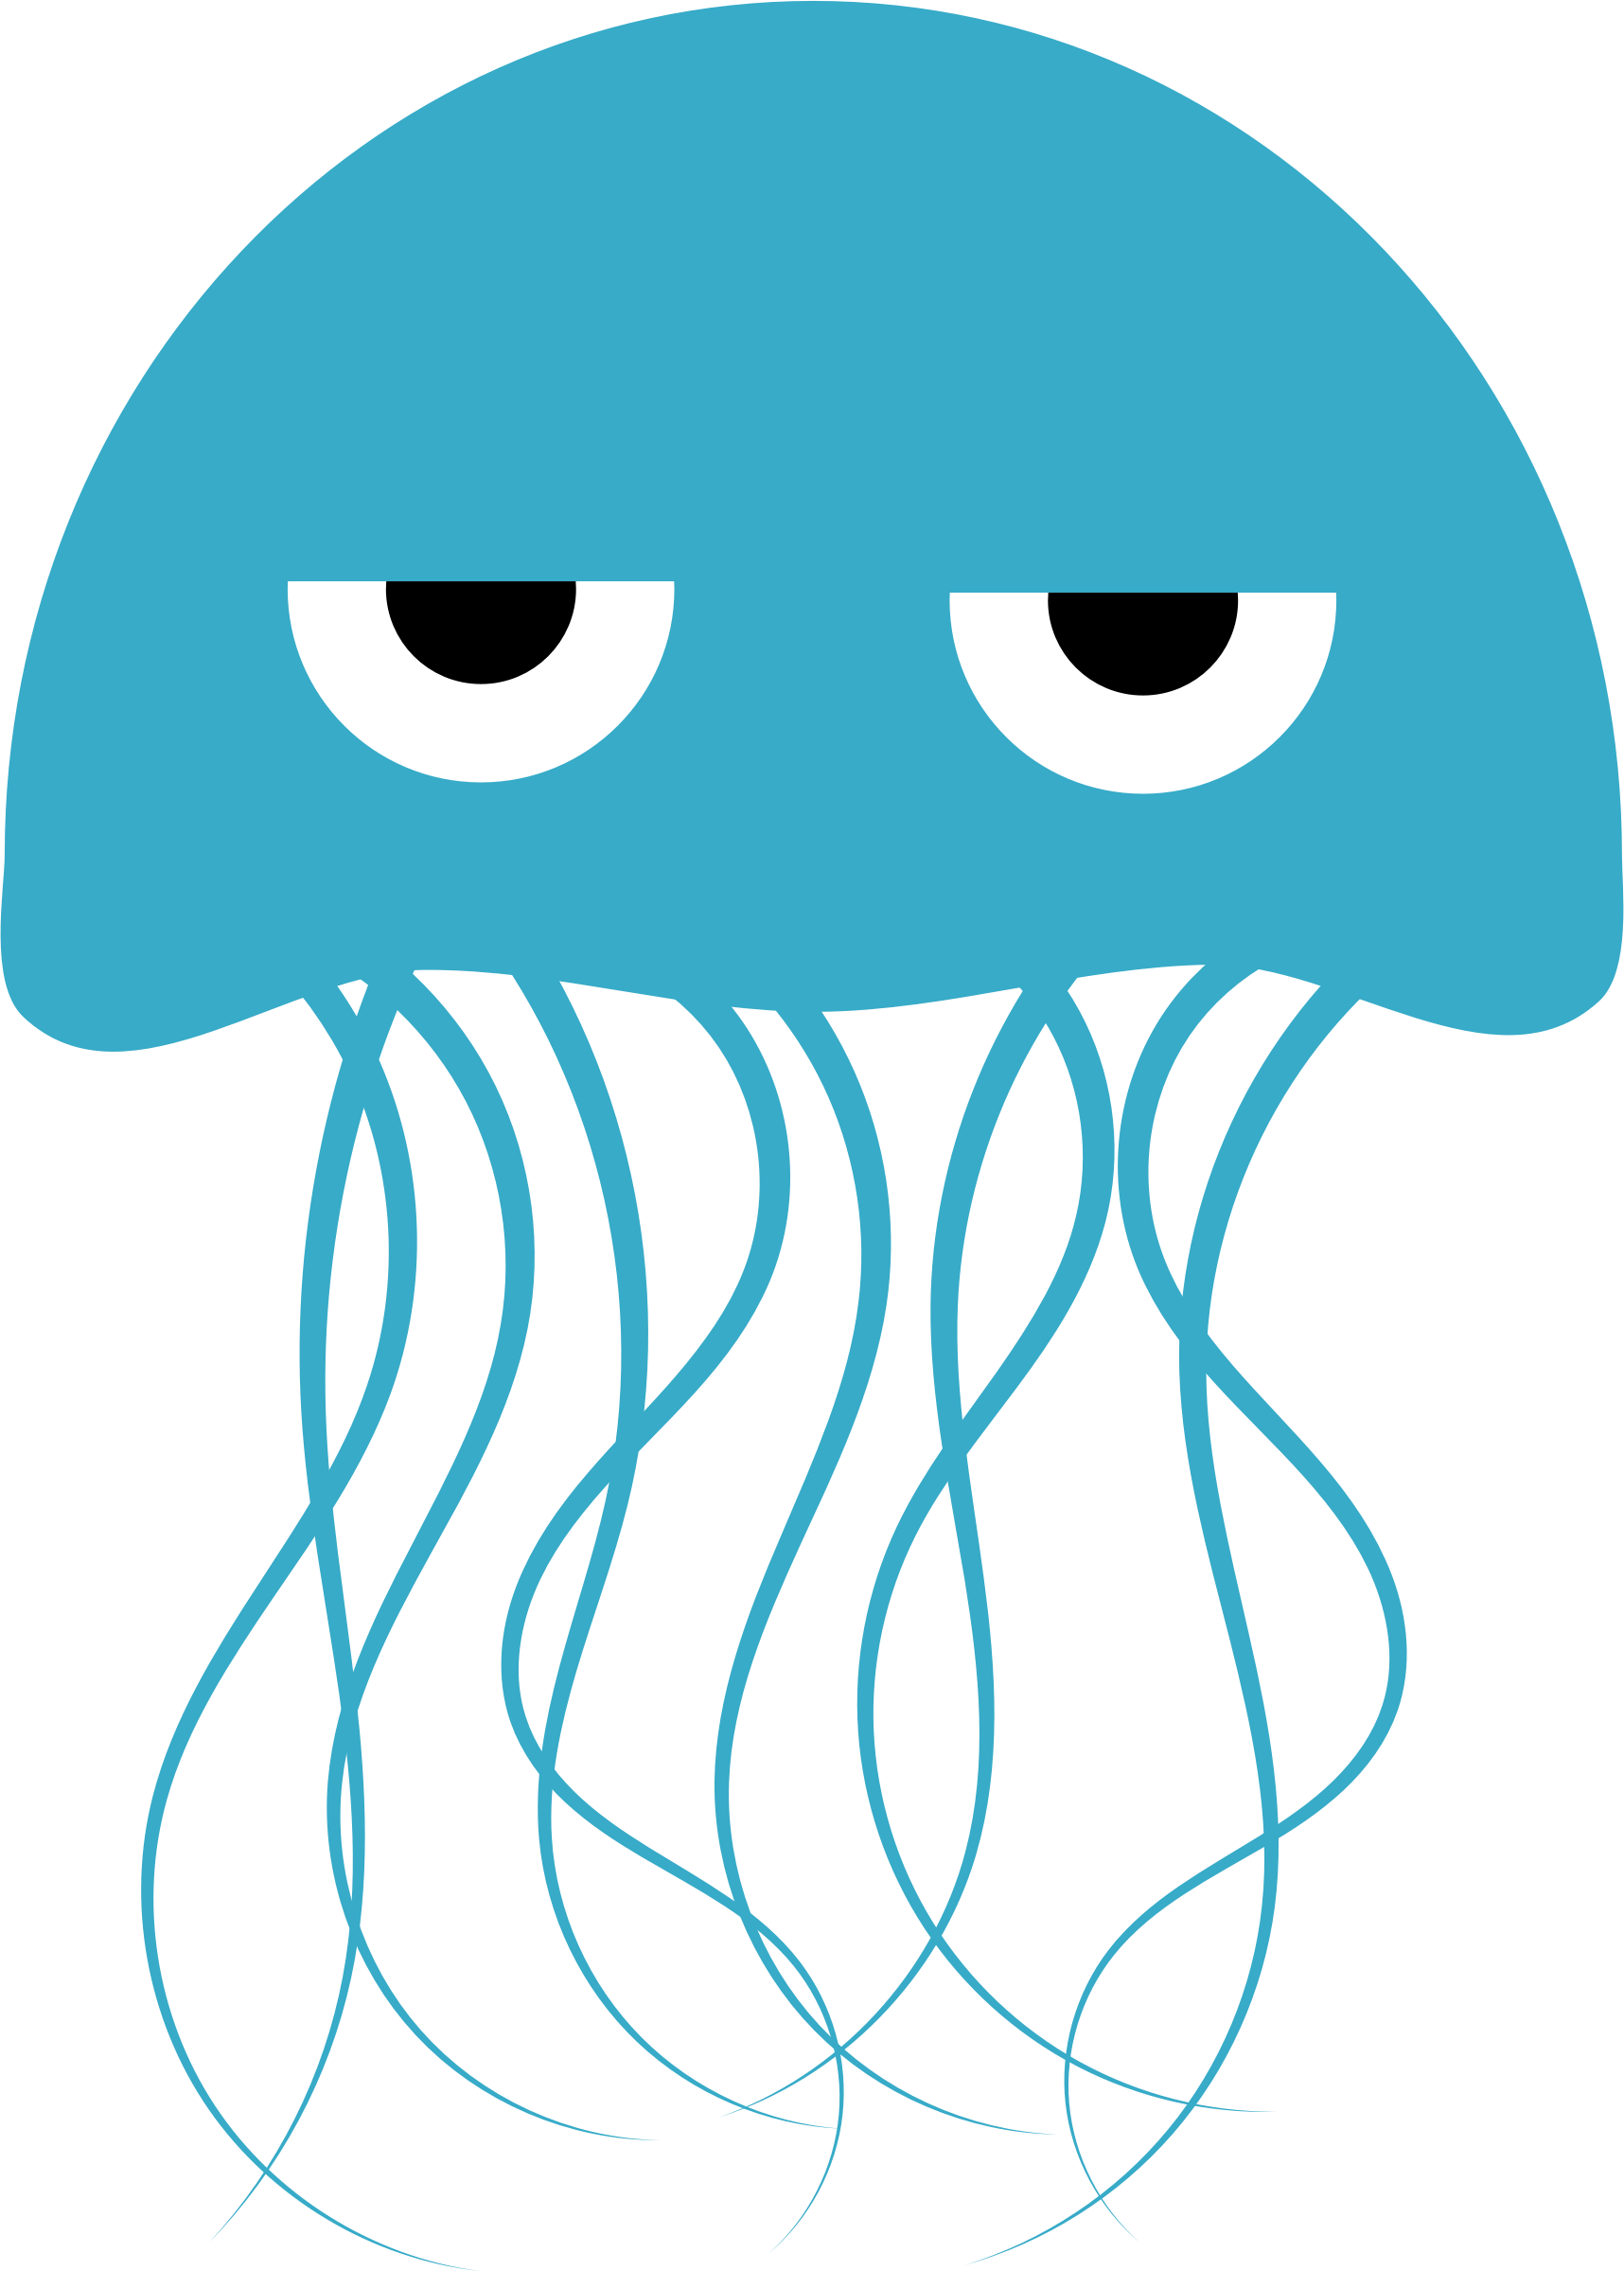 Jellyfish svg clipart black. Jelly fish free download